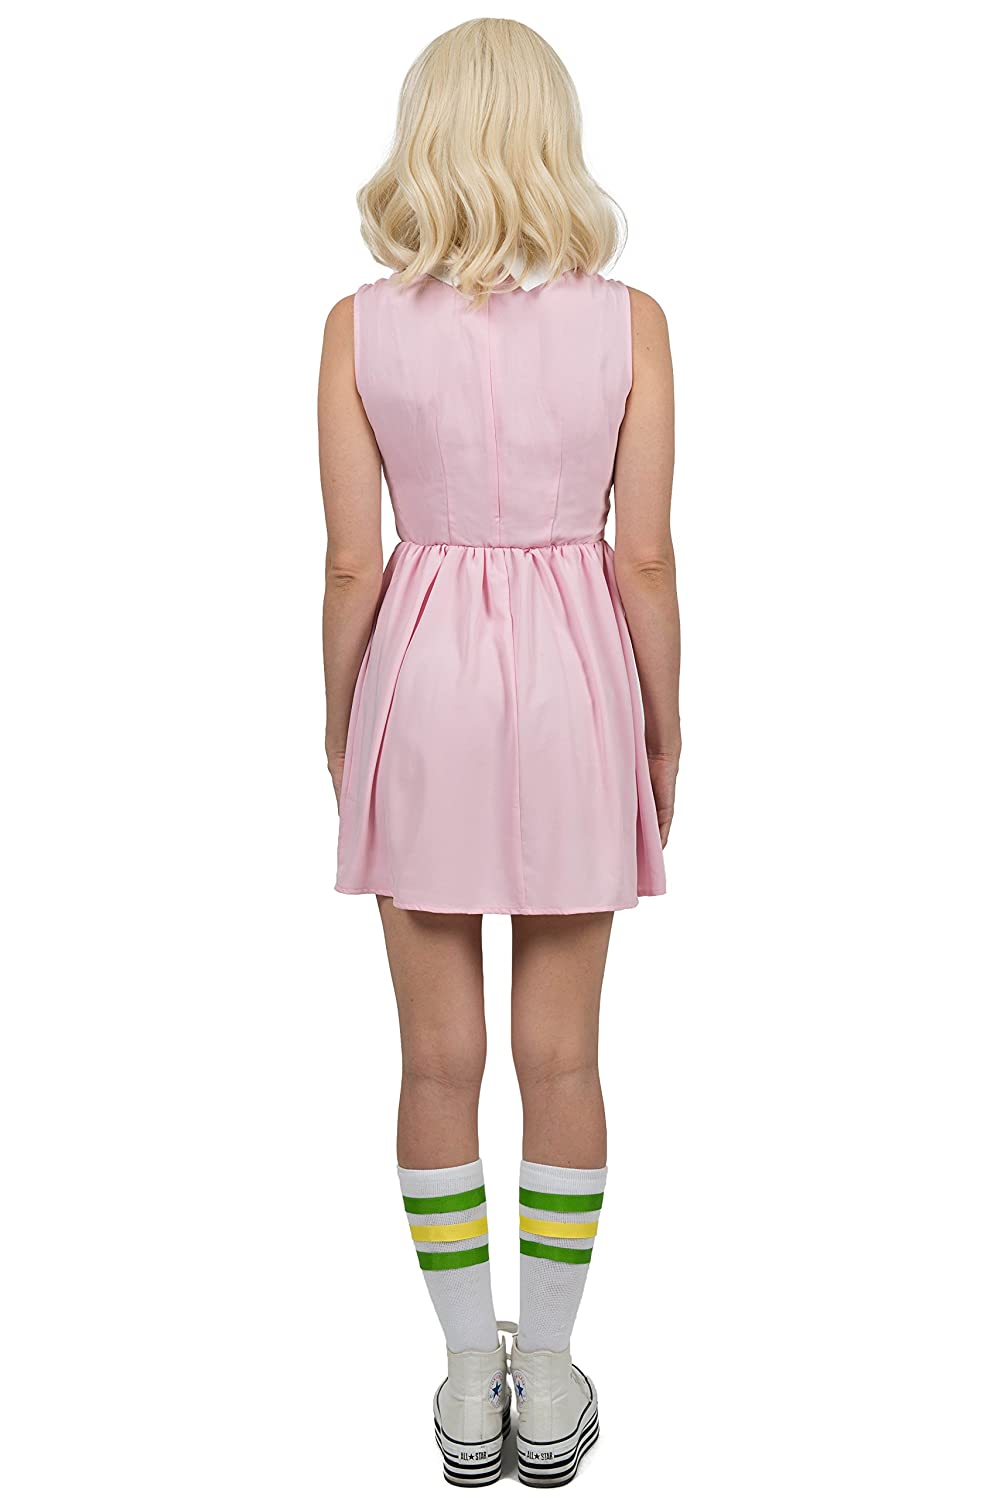 amazoncom eleven dress stranger things halloween costume clothing